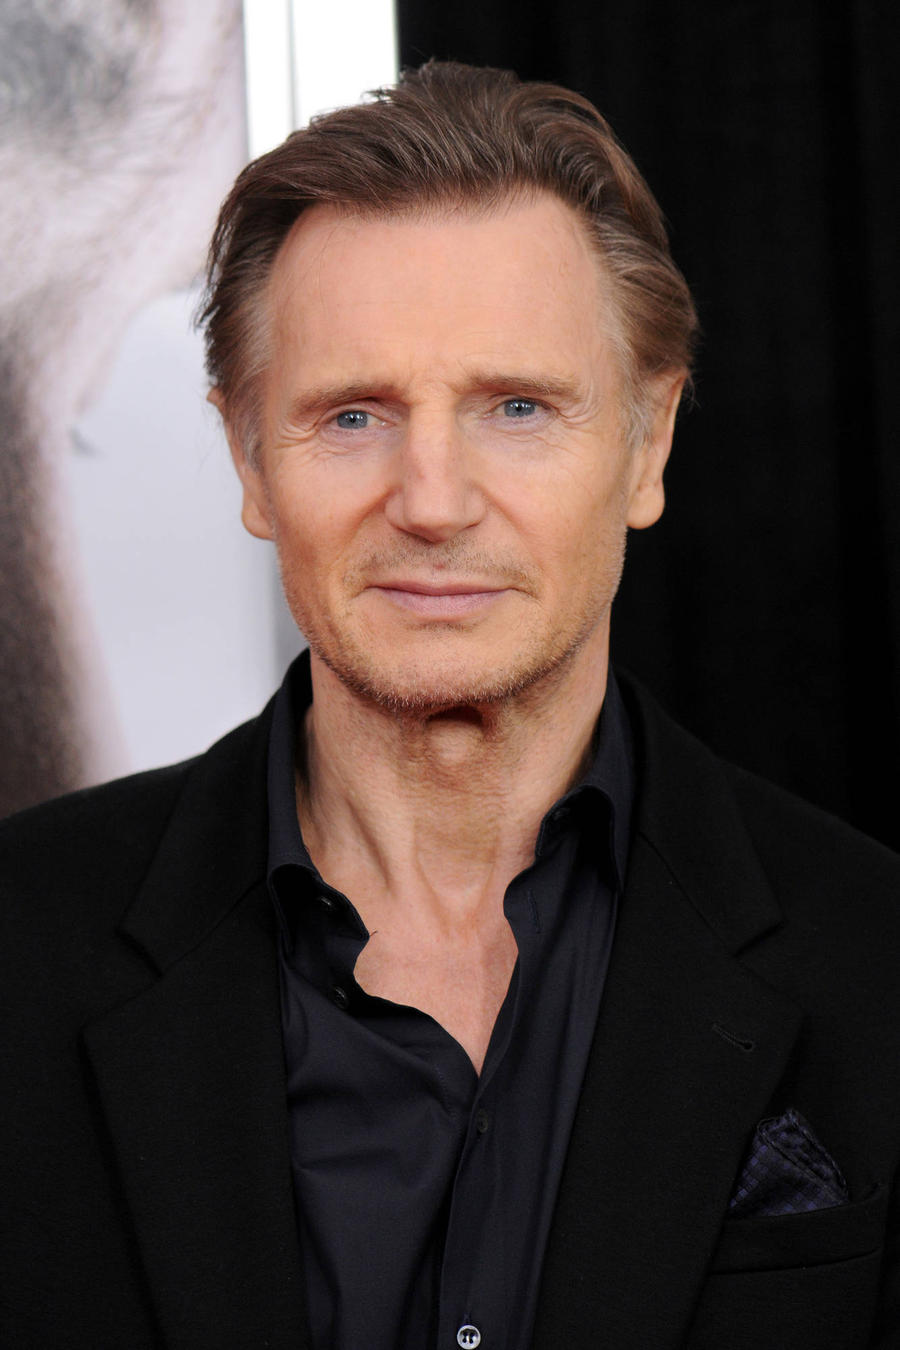 Liam Neeson Finds Love With 'Super Famous' Girlfriend